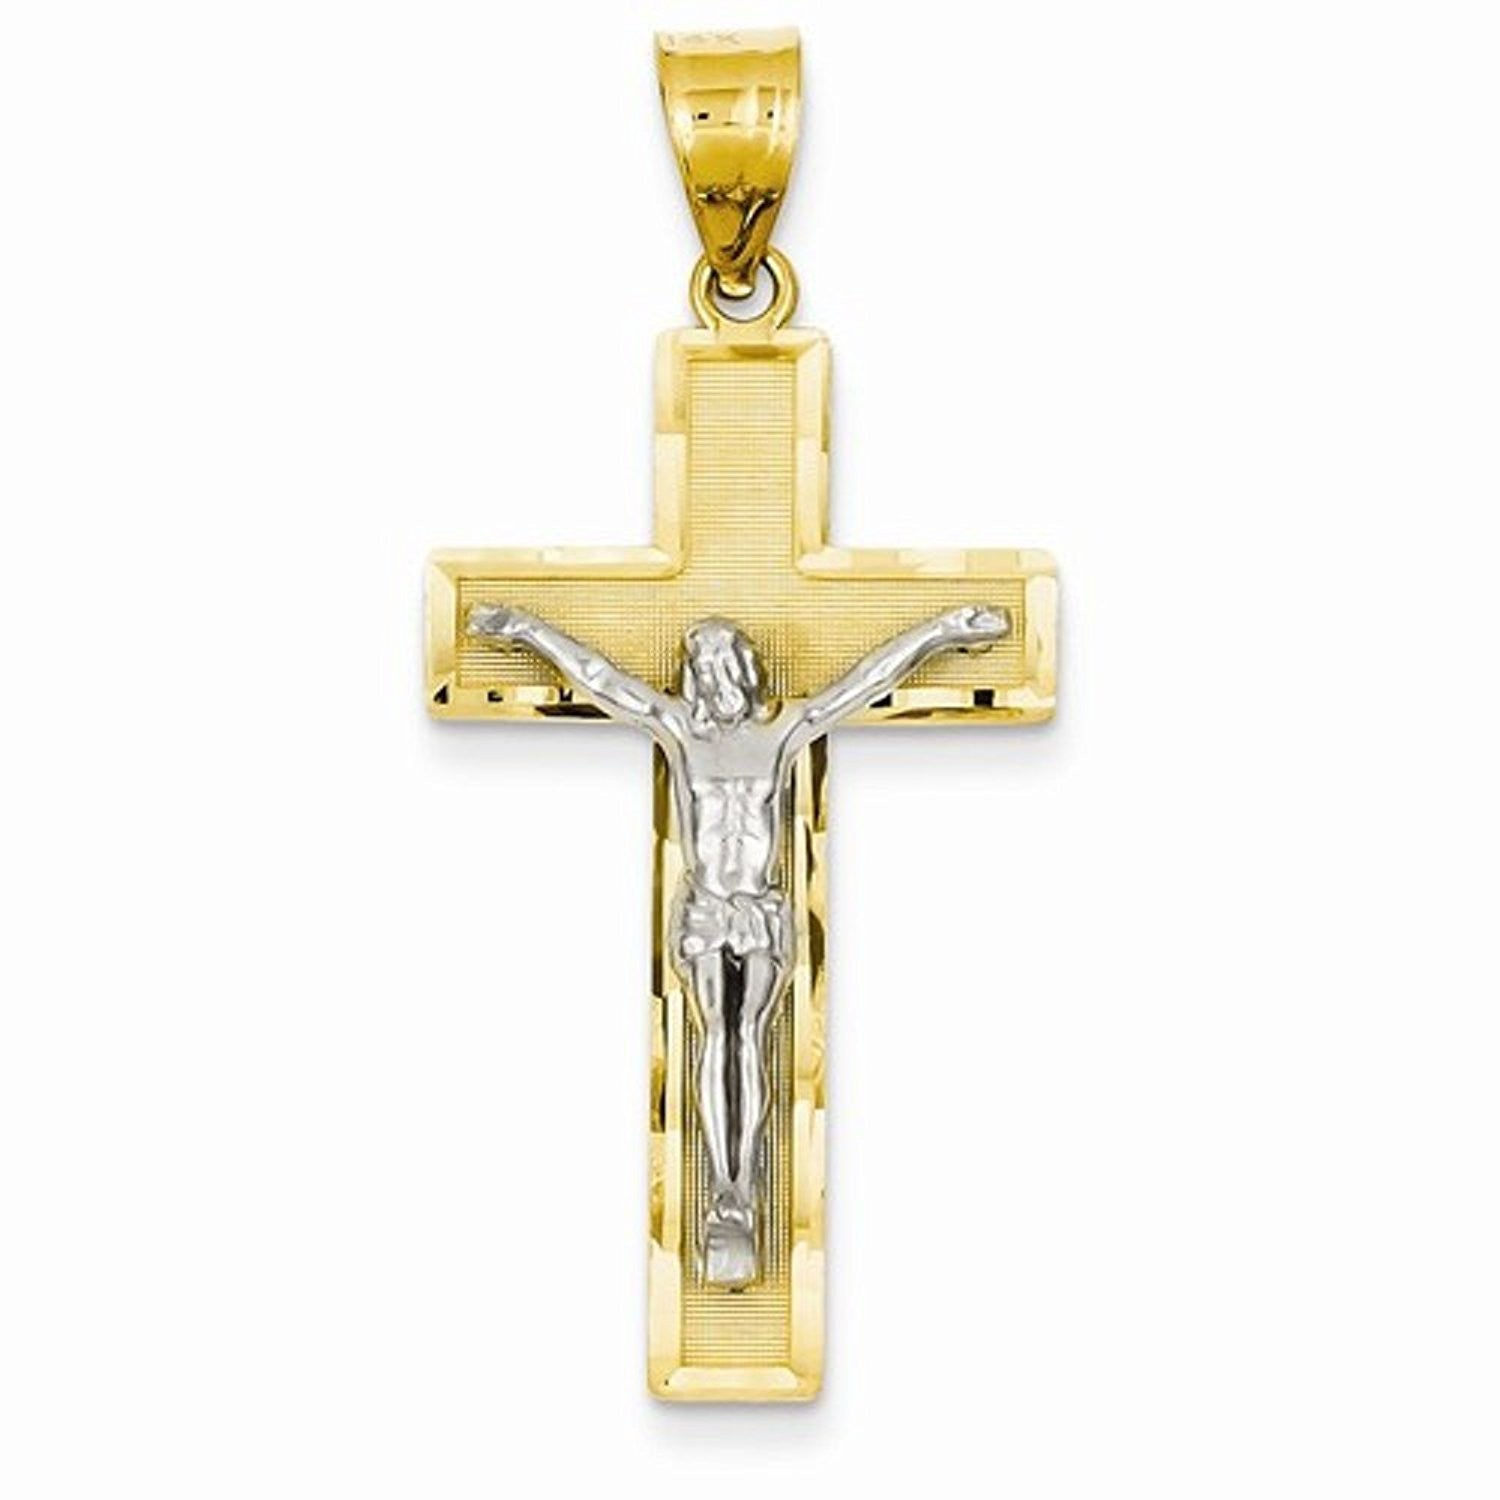 14k Gold Two Tone Crucifix Cross Pendant Charm